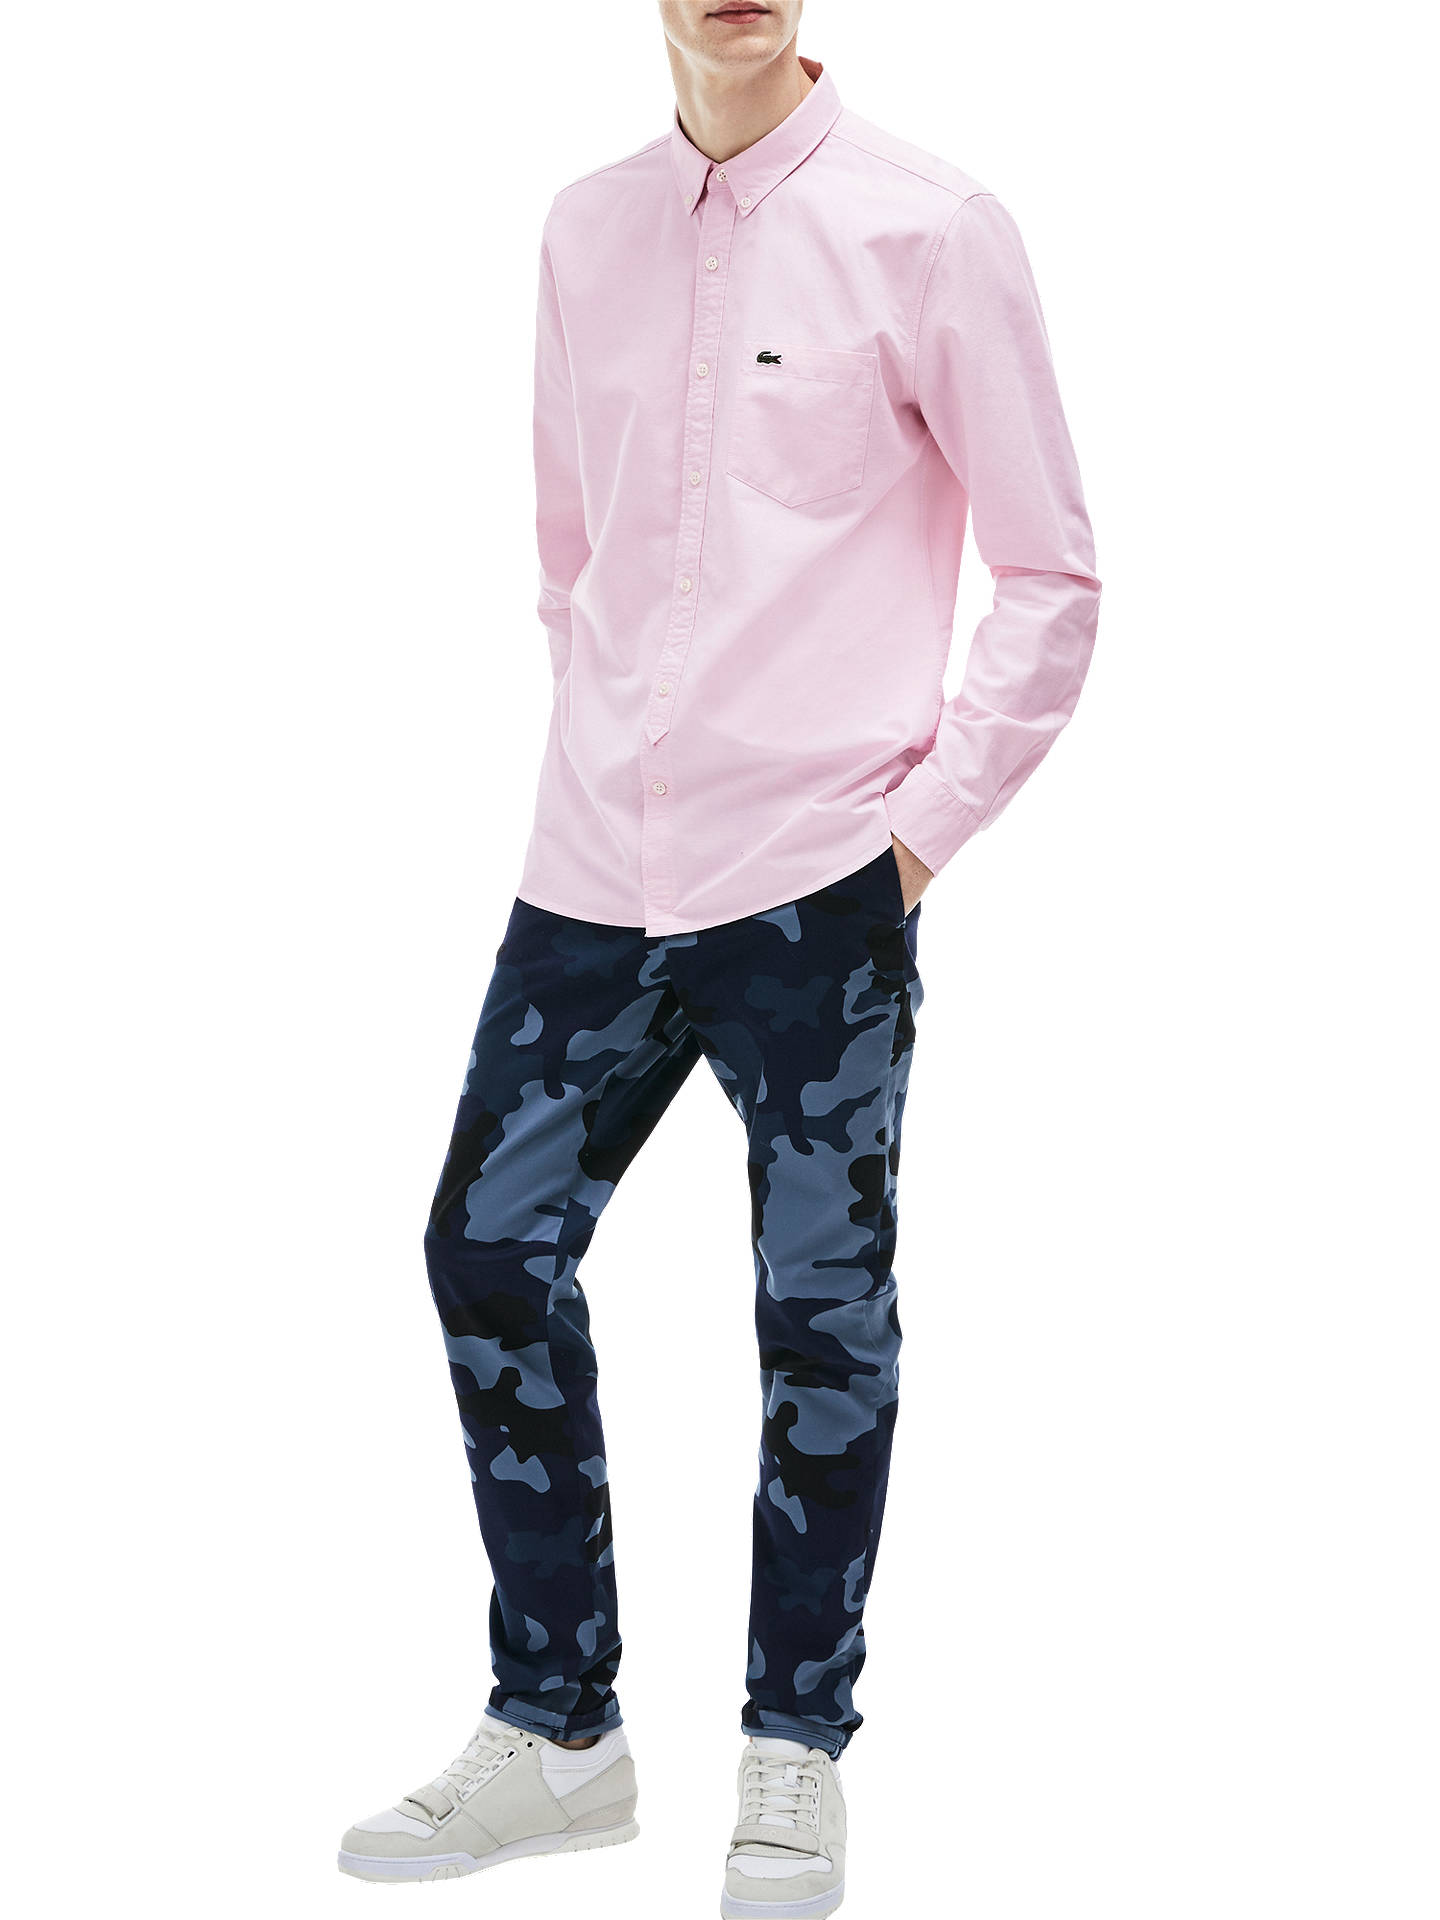 321471a1 Buy Lacoste LIVE Long Sleeve Oxford Shirt, Pink, S Online at johnlewis.com  ...